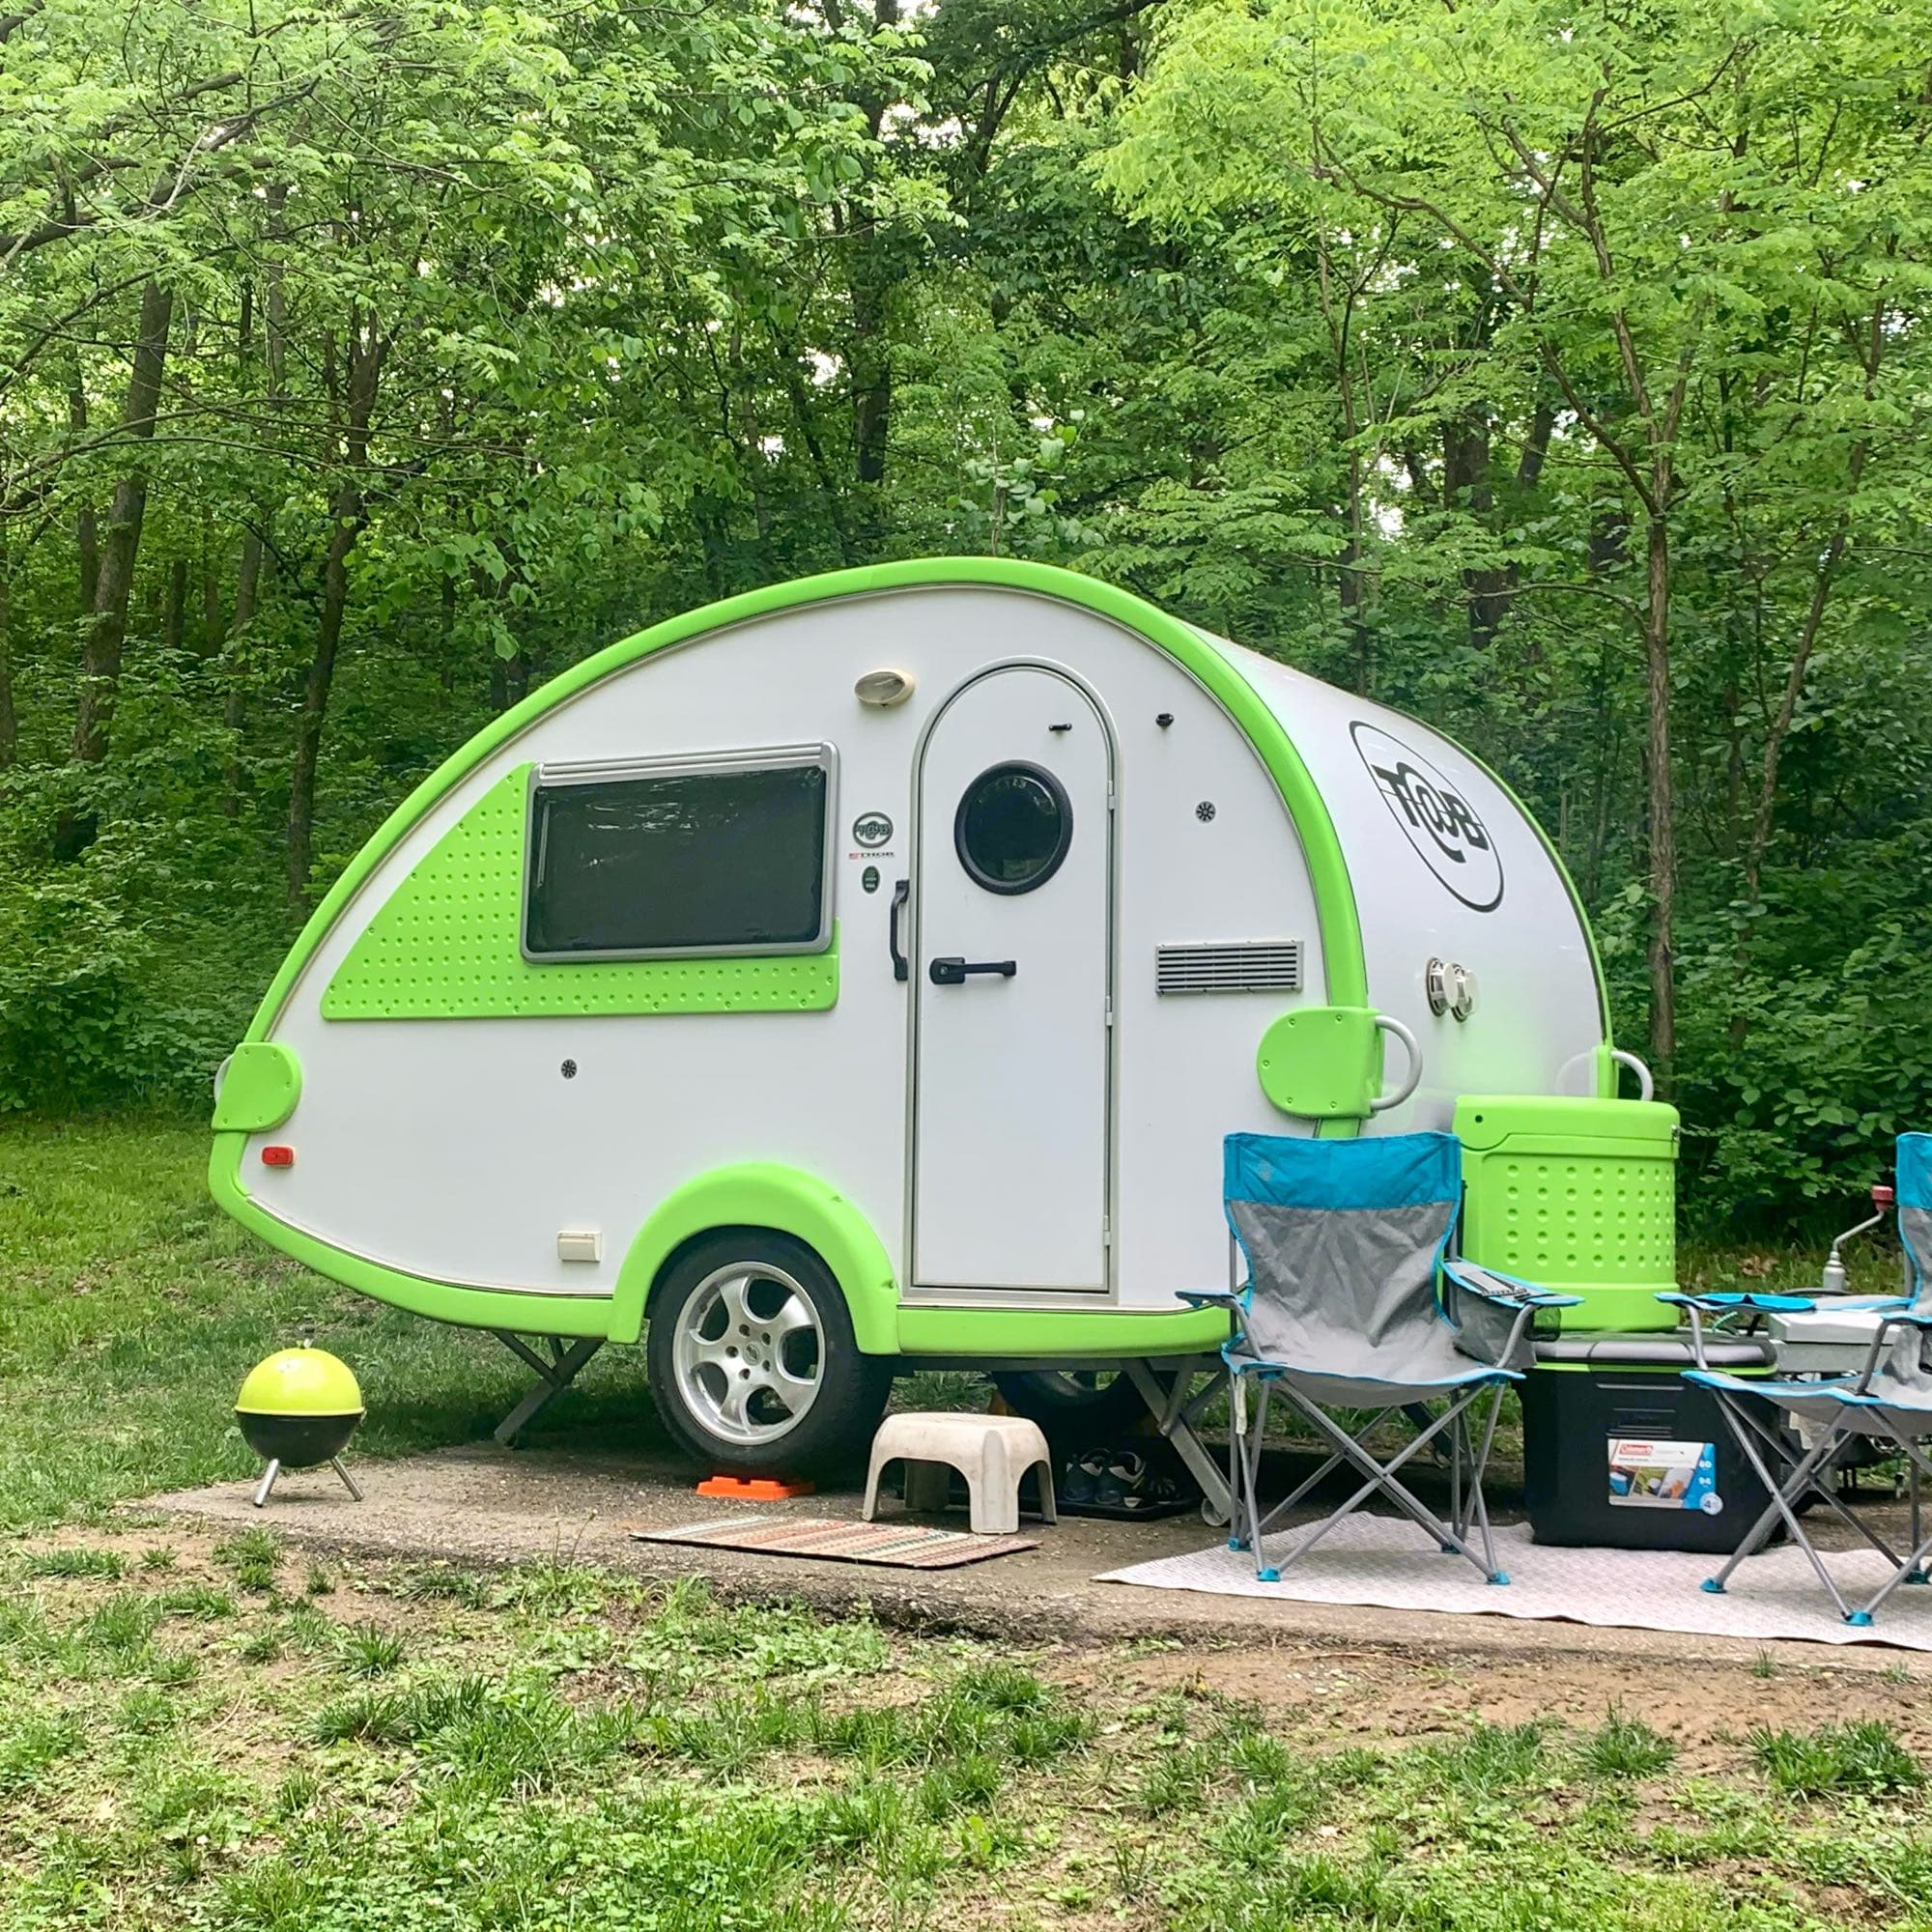 at 16', it fits easily into smaller campsites at national, state, & county parks. Tiny charcoal grill, medium cooler, & 2 folding camp chairs included. T@B T16 2008